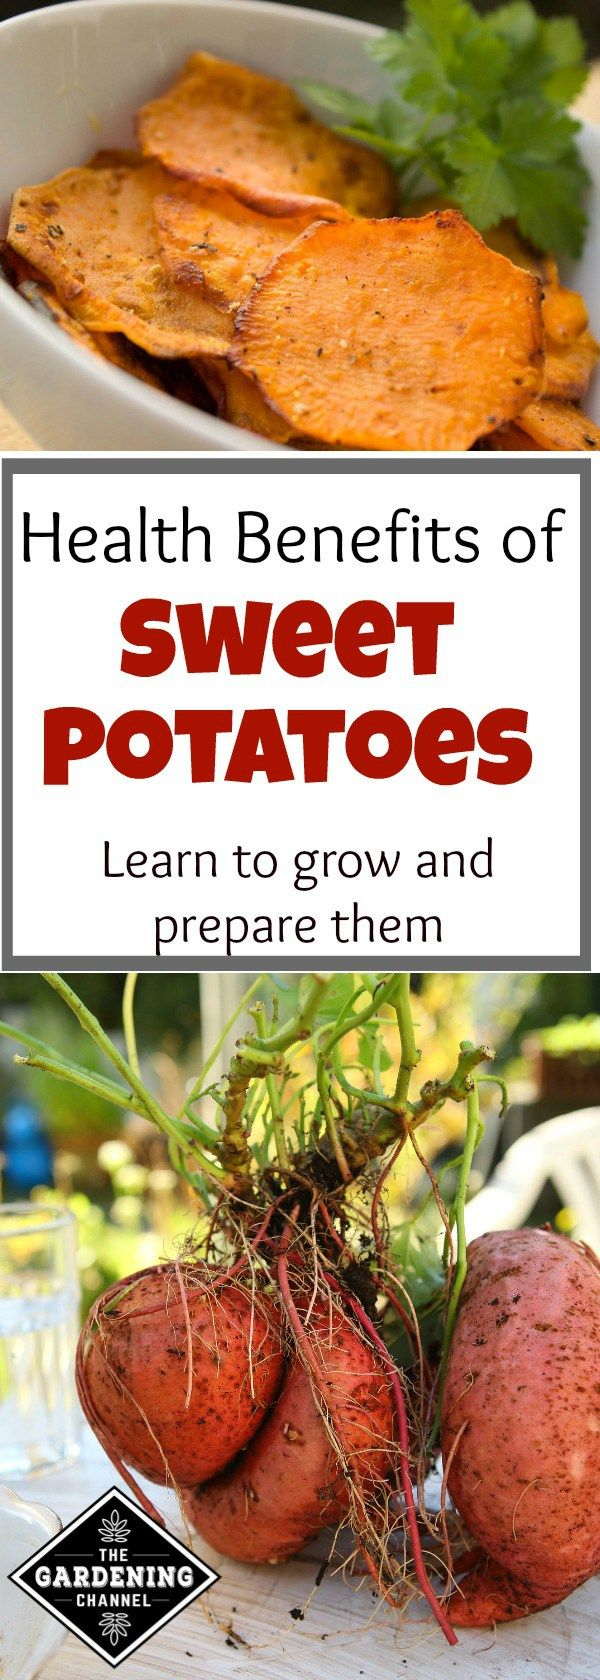 11 health benefits of sweet potatoes plus how to grow and cook